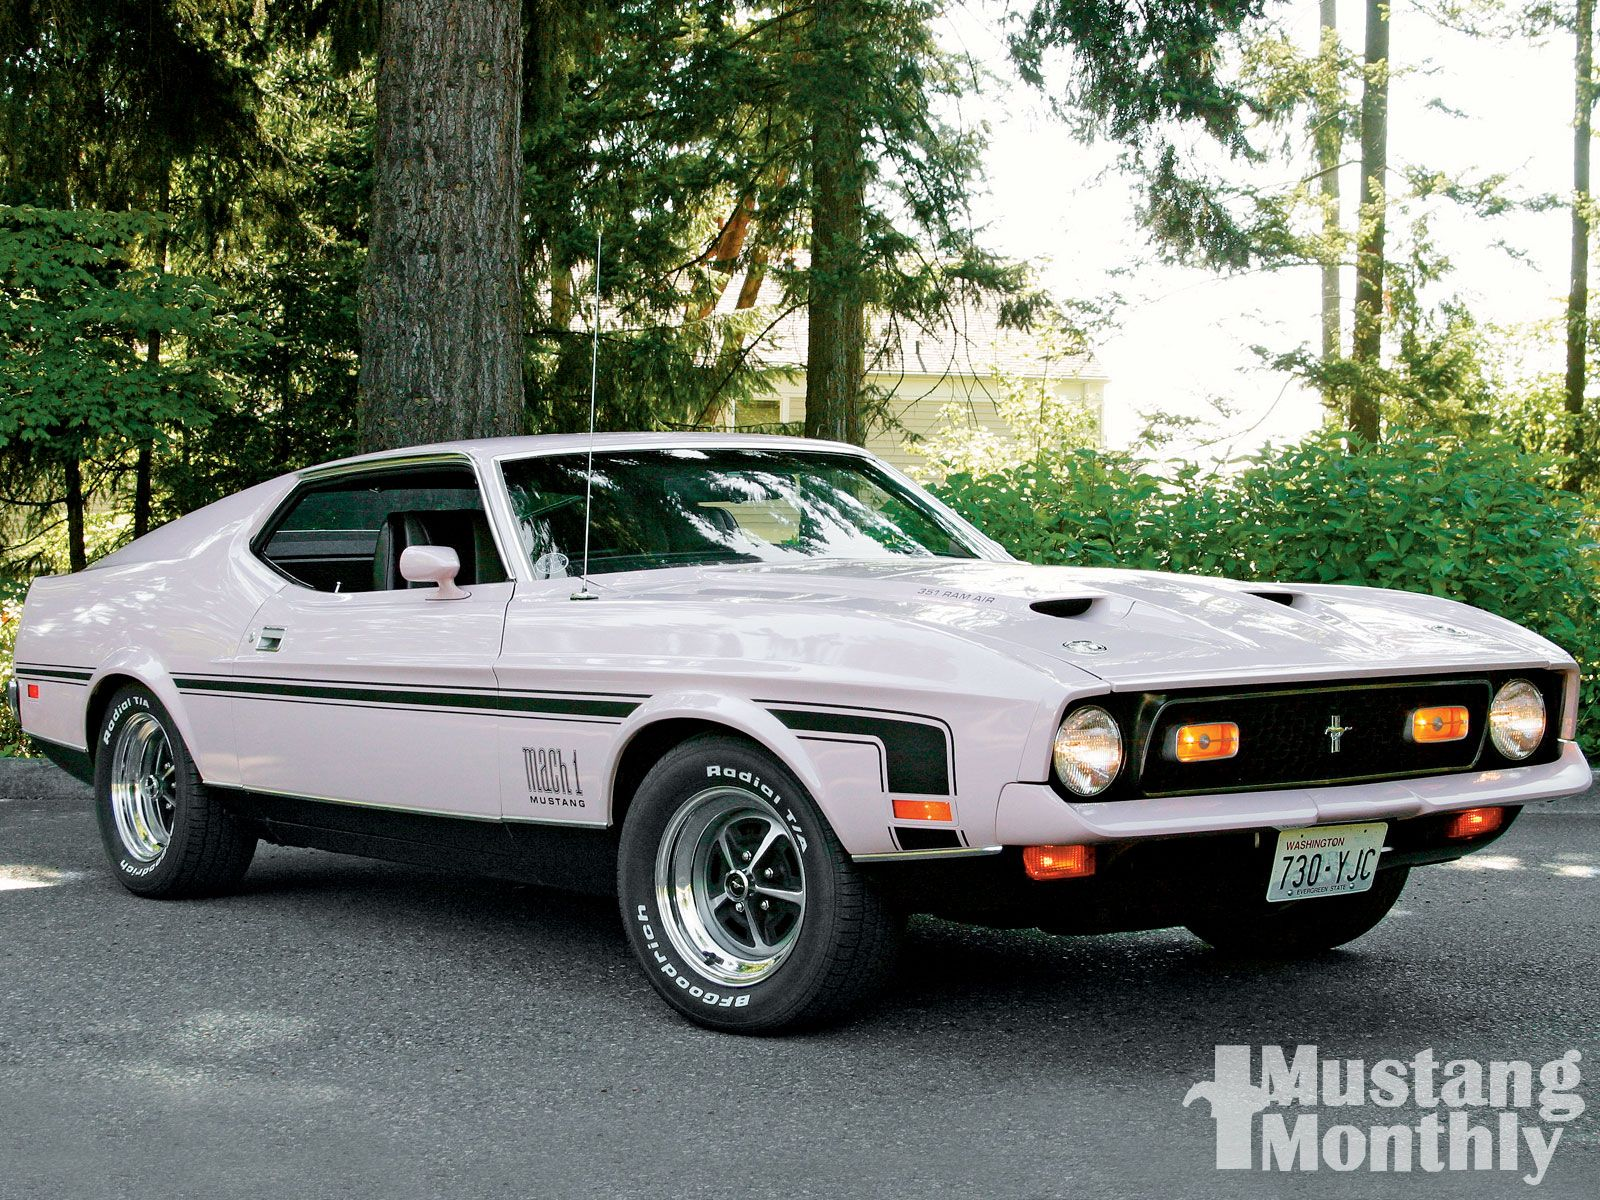 71 mustang mach 1 re pin brought to you by agents at houseofinsurance eugene oregon for carinsurance